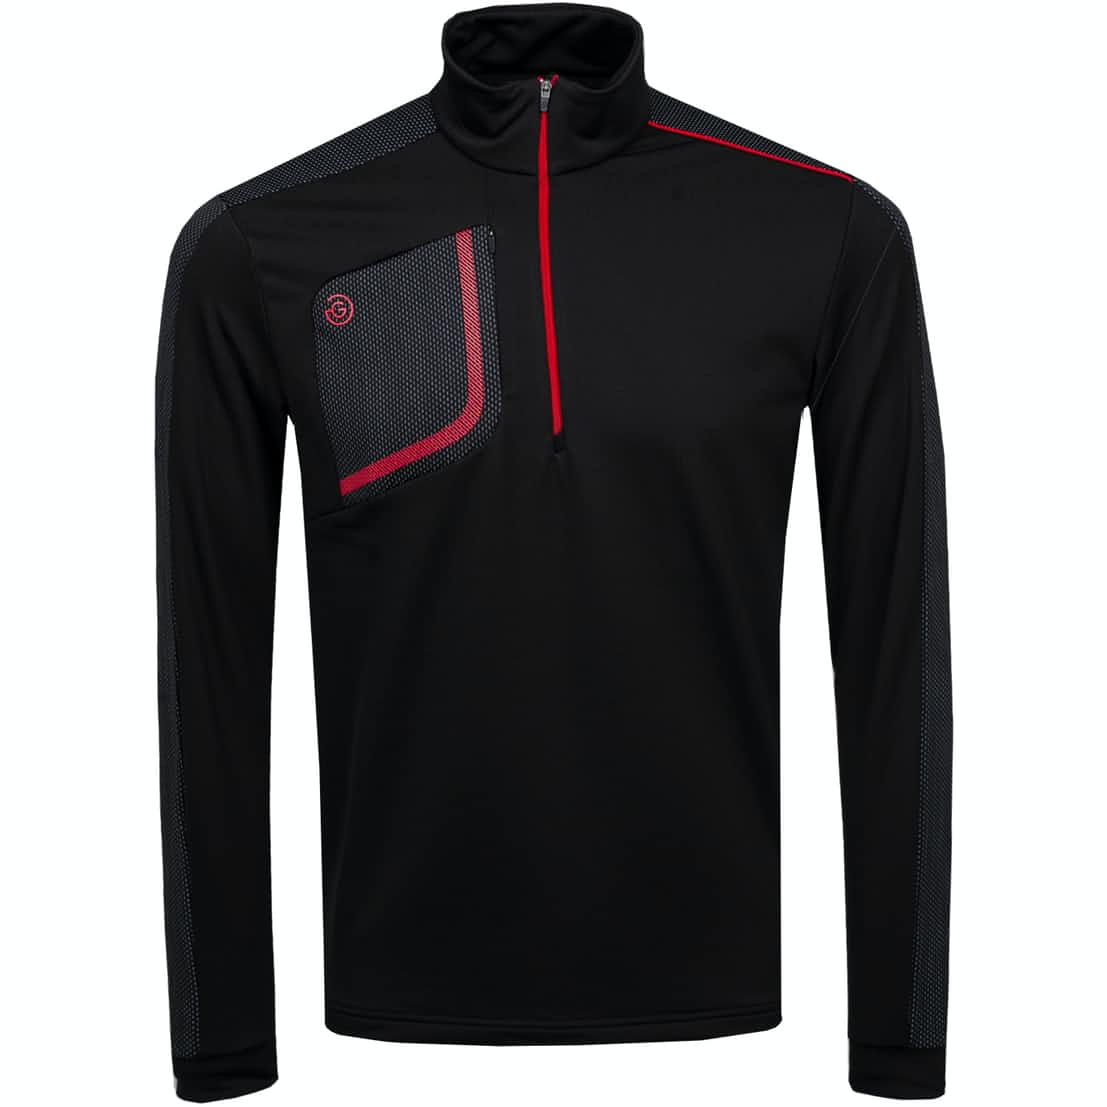 Dwight HZ Insula Jacket Black/Red - 2020